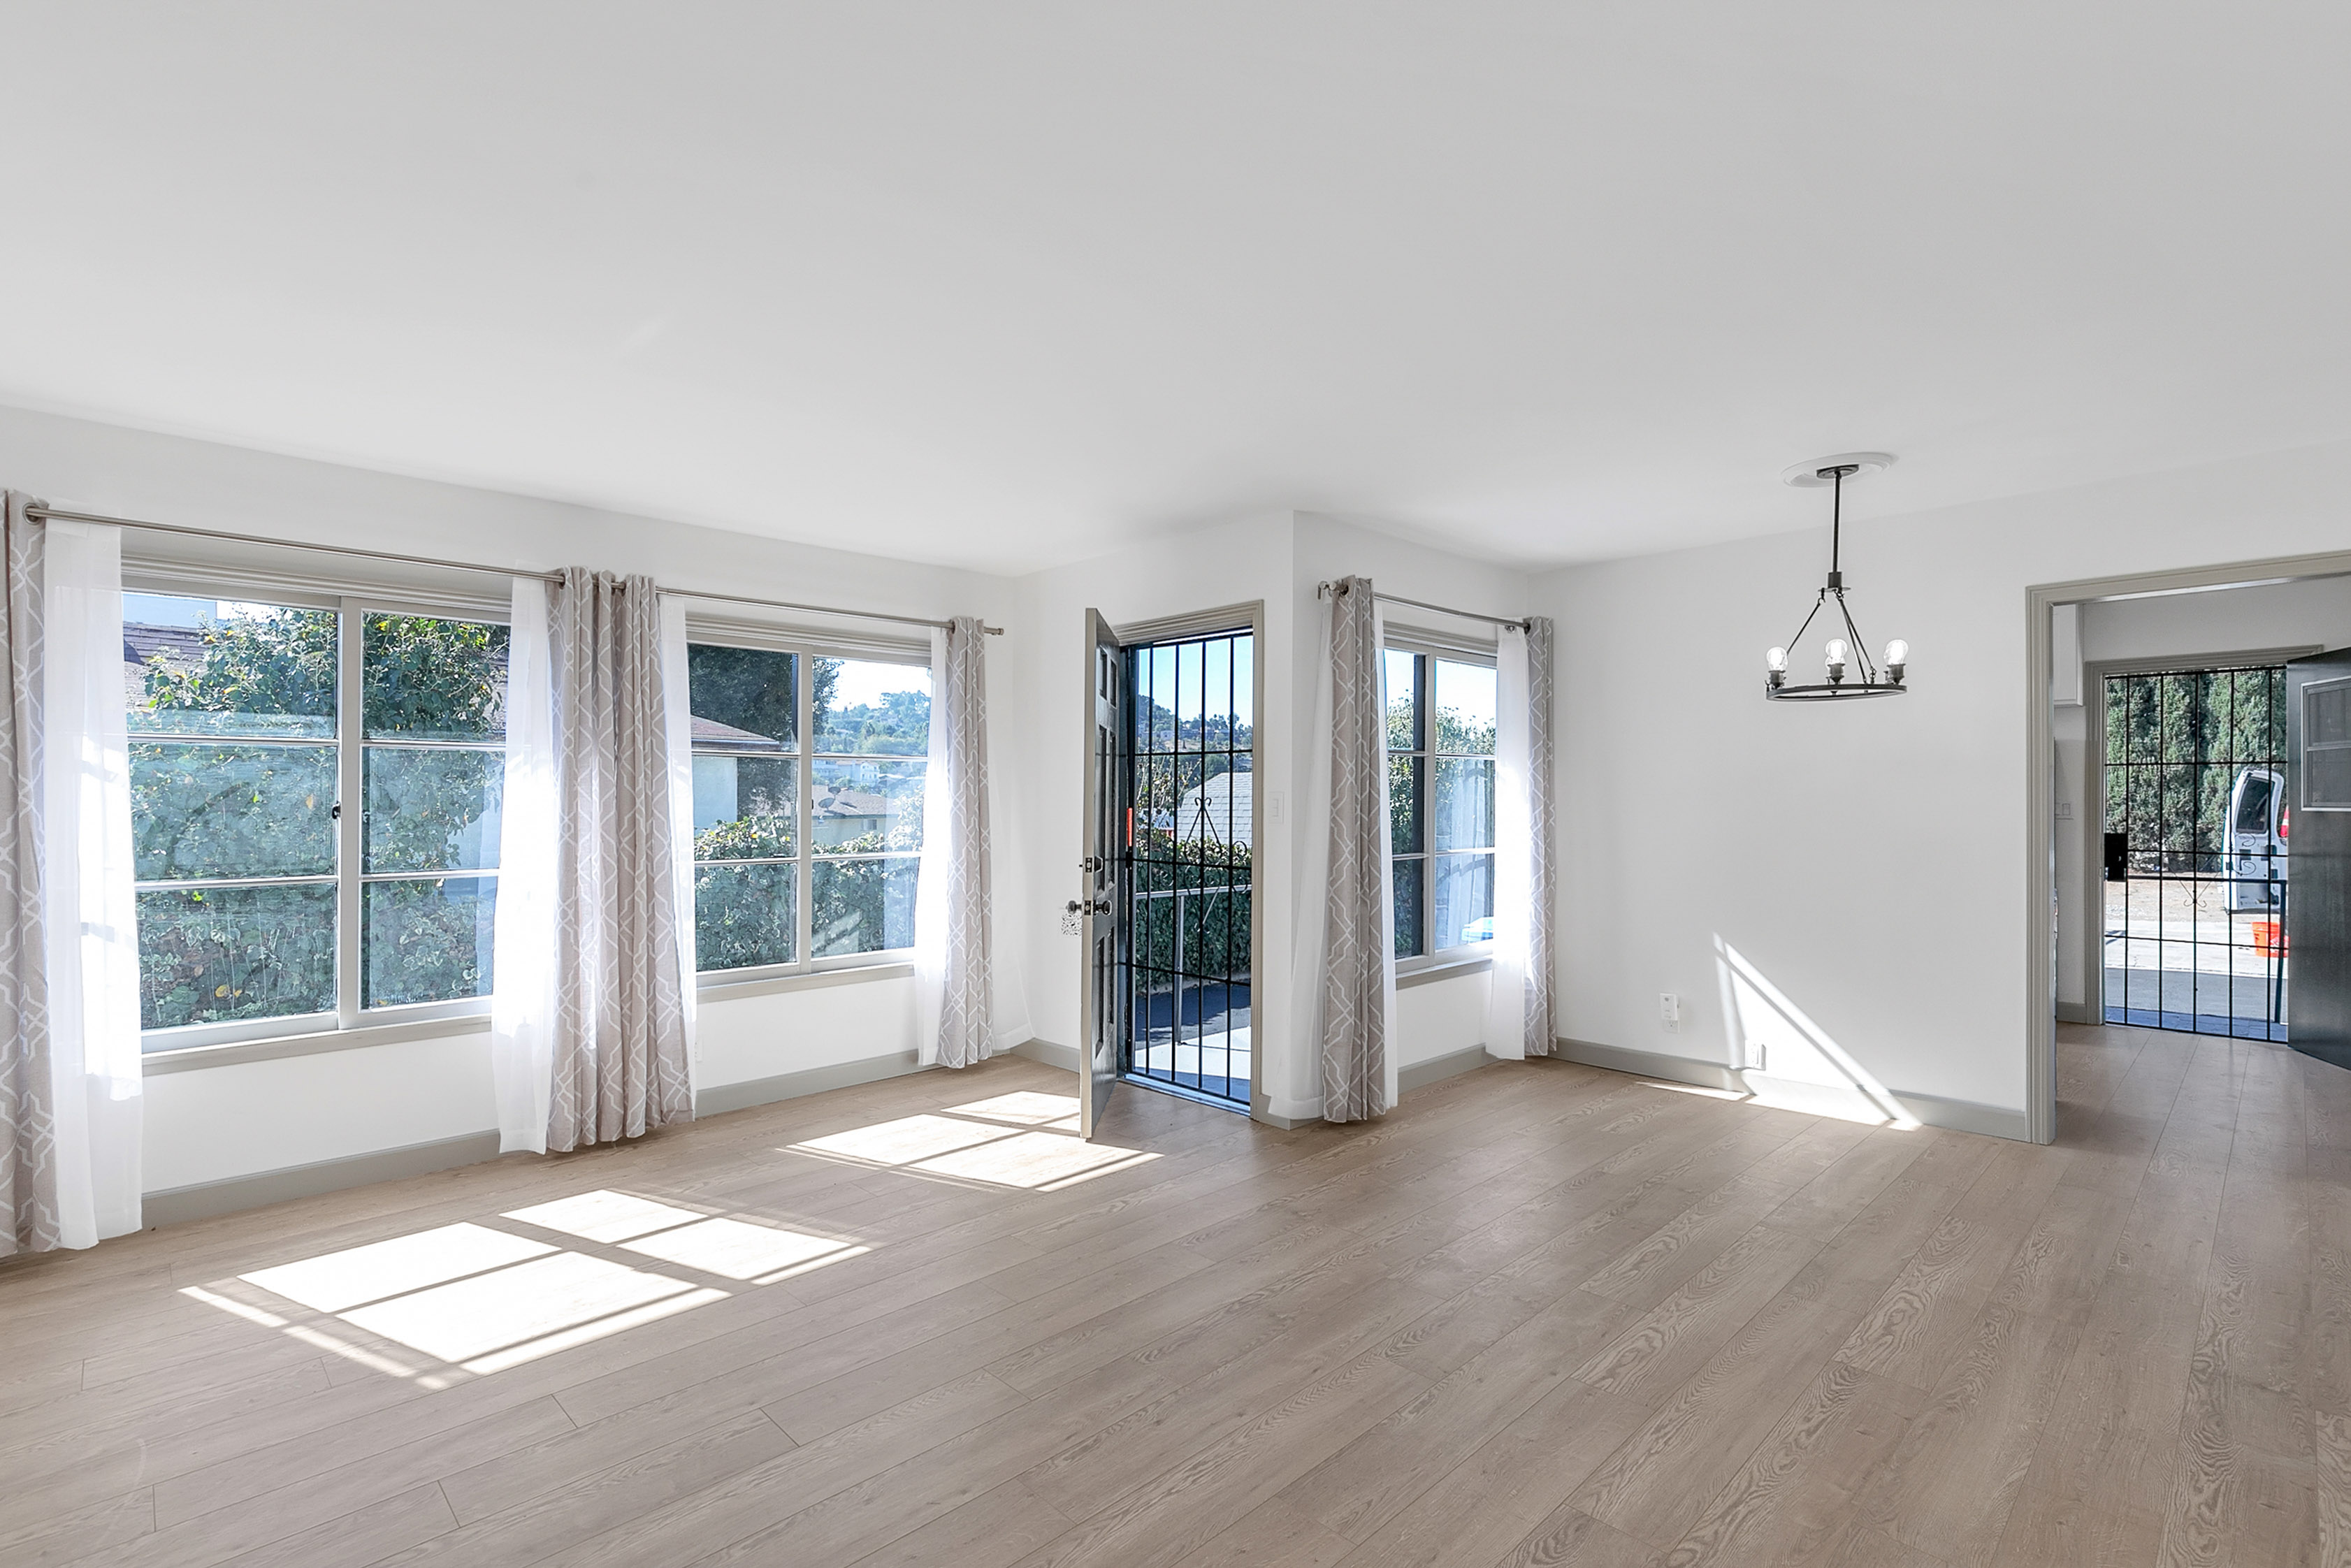 Updated & Fresh 2 Bedroom Duplex |Prime NELA Location! | All New Appliances | Parking Included!